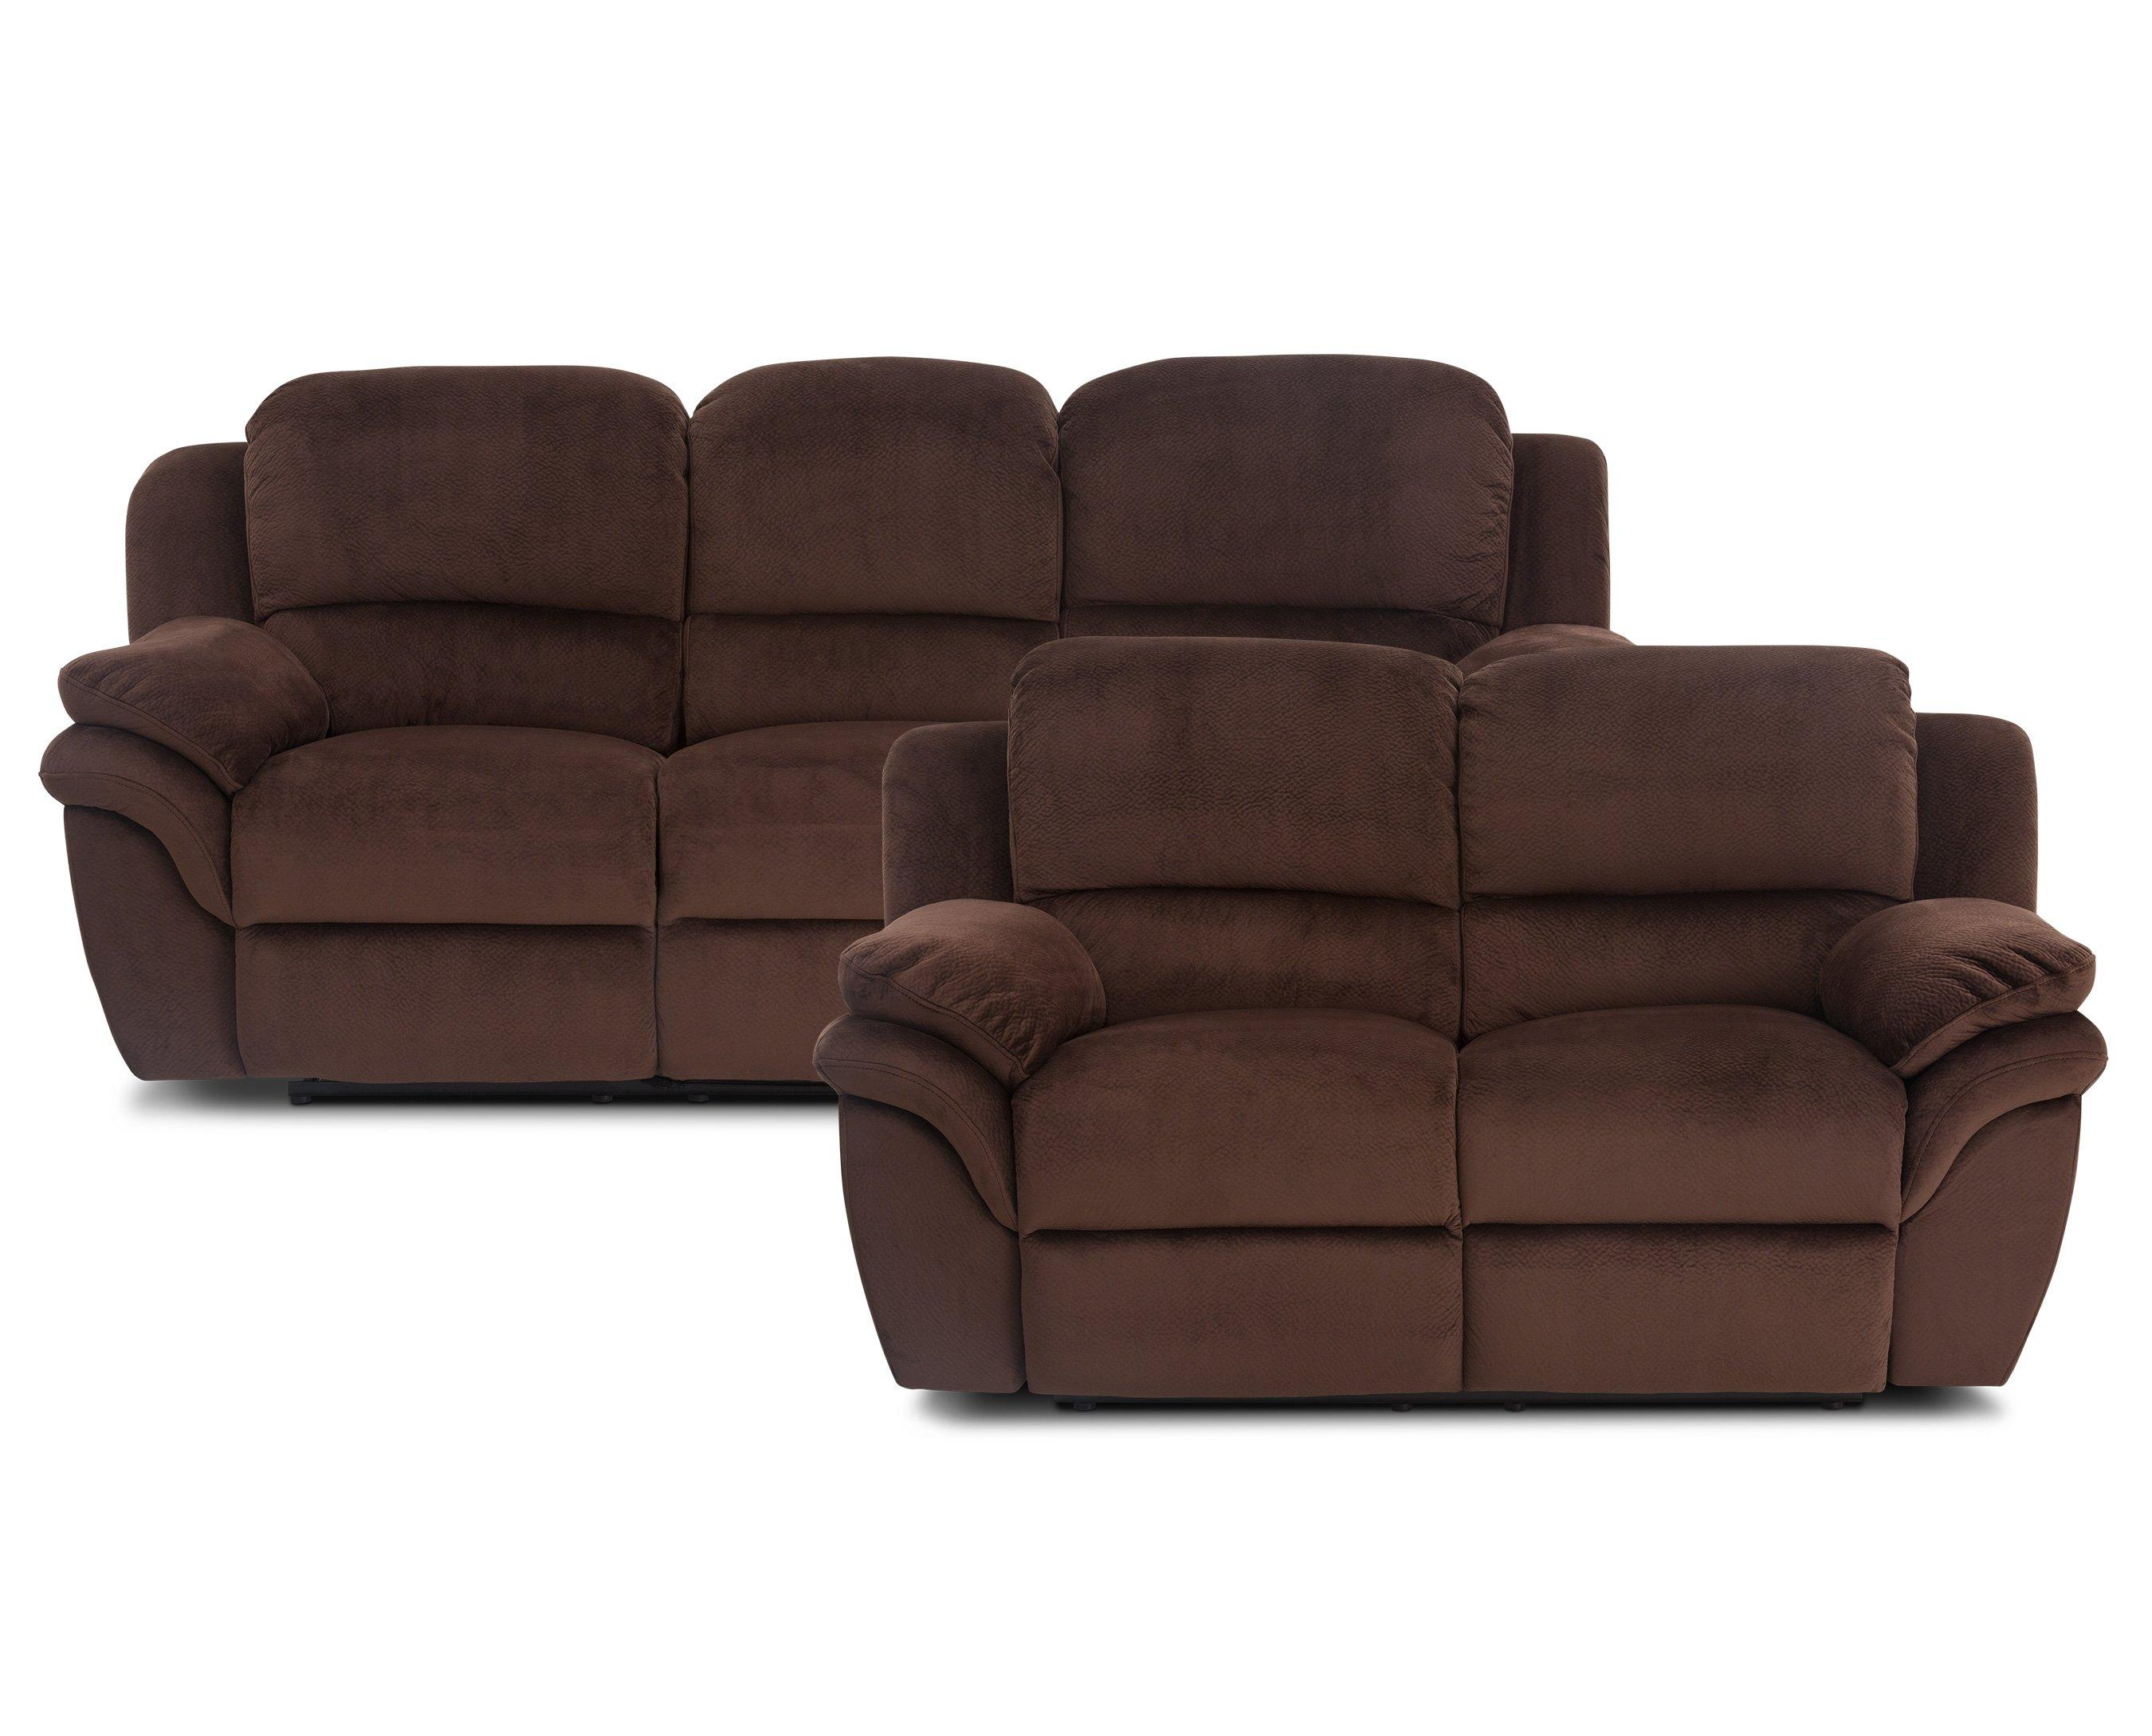 Living Room Furniture, Sofas & Sectionals | Furniture Row For Overstuffed Sofas And Chairs (Image 13 of 20)